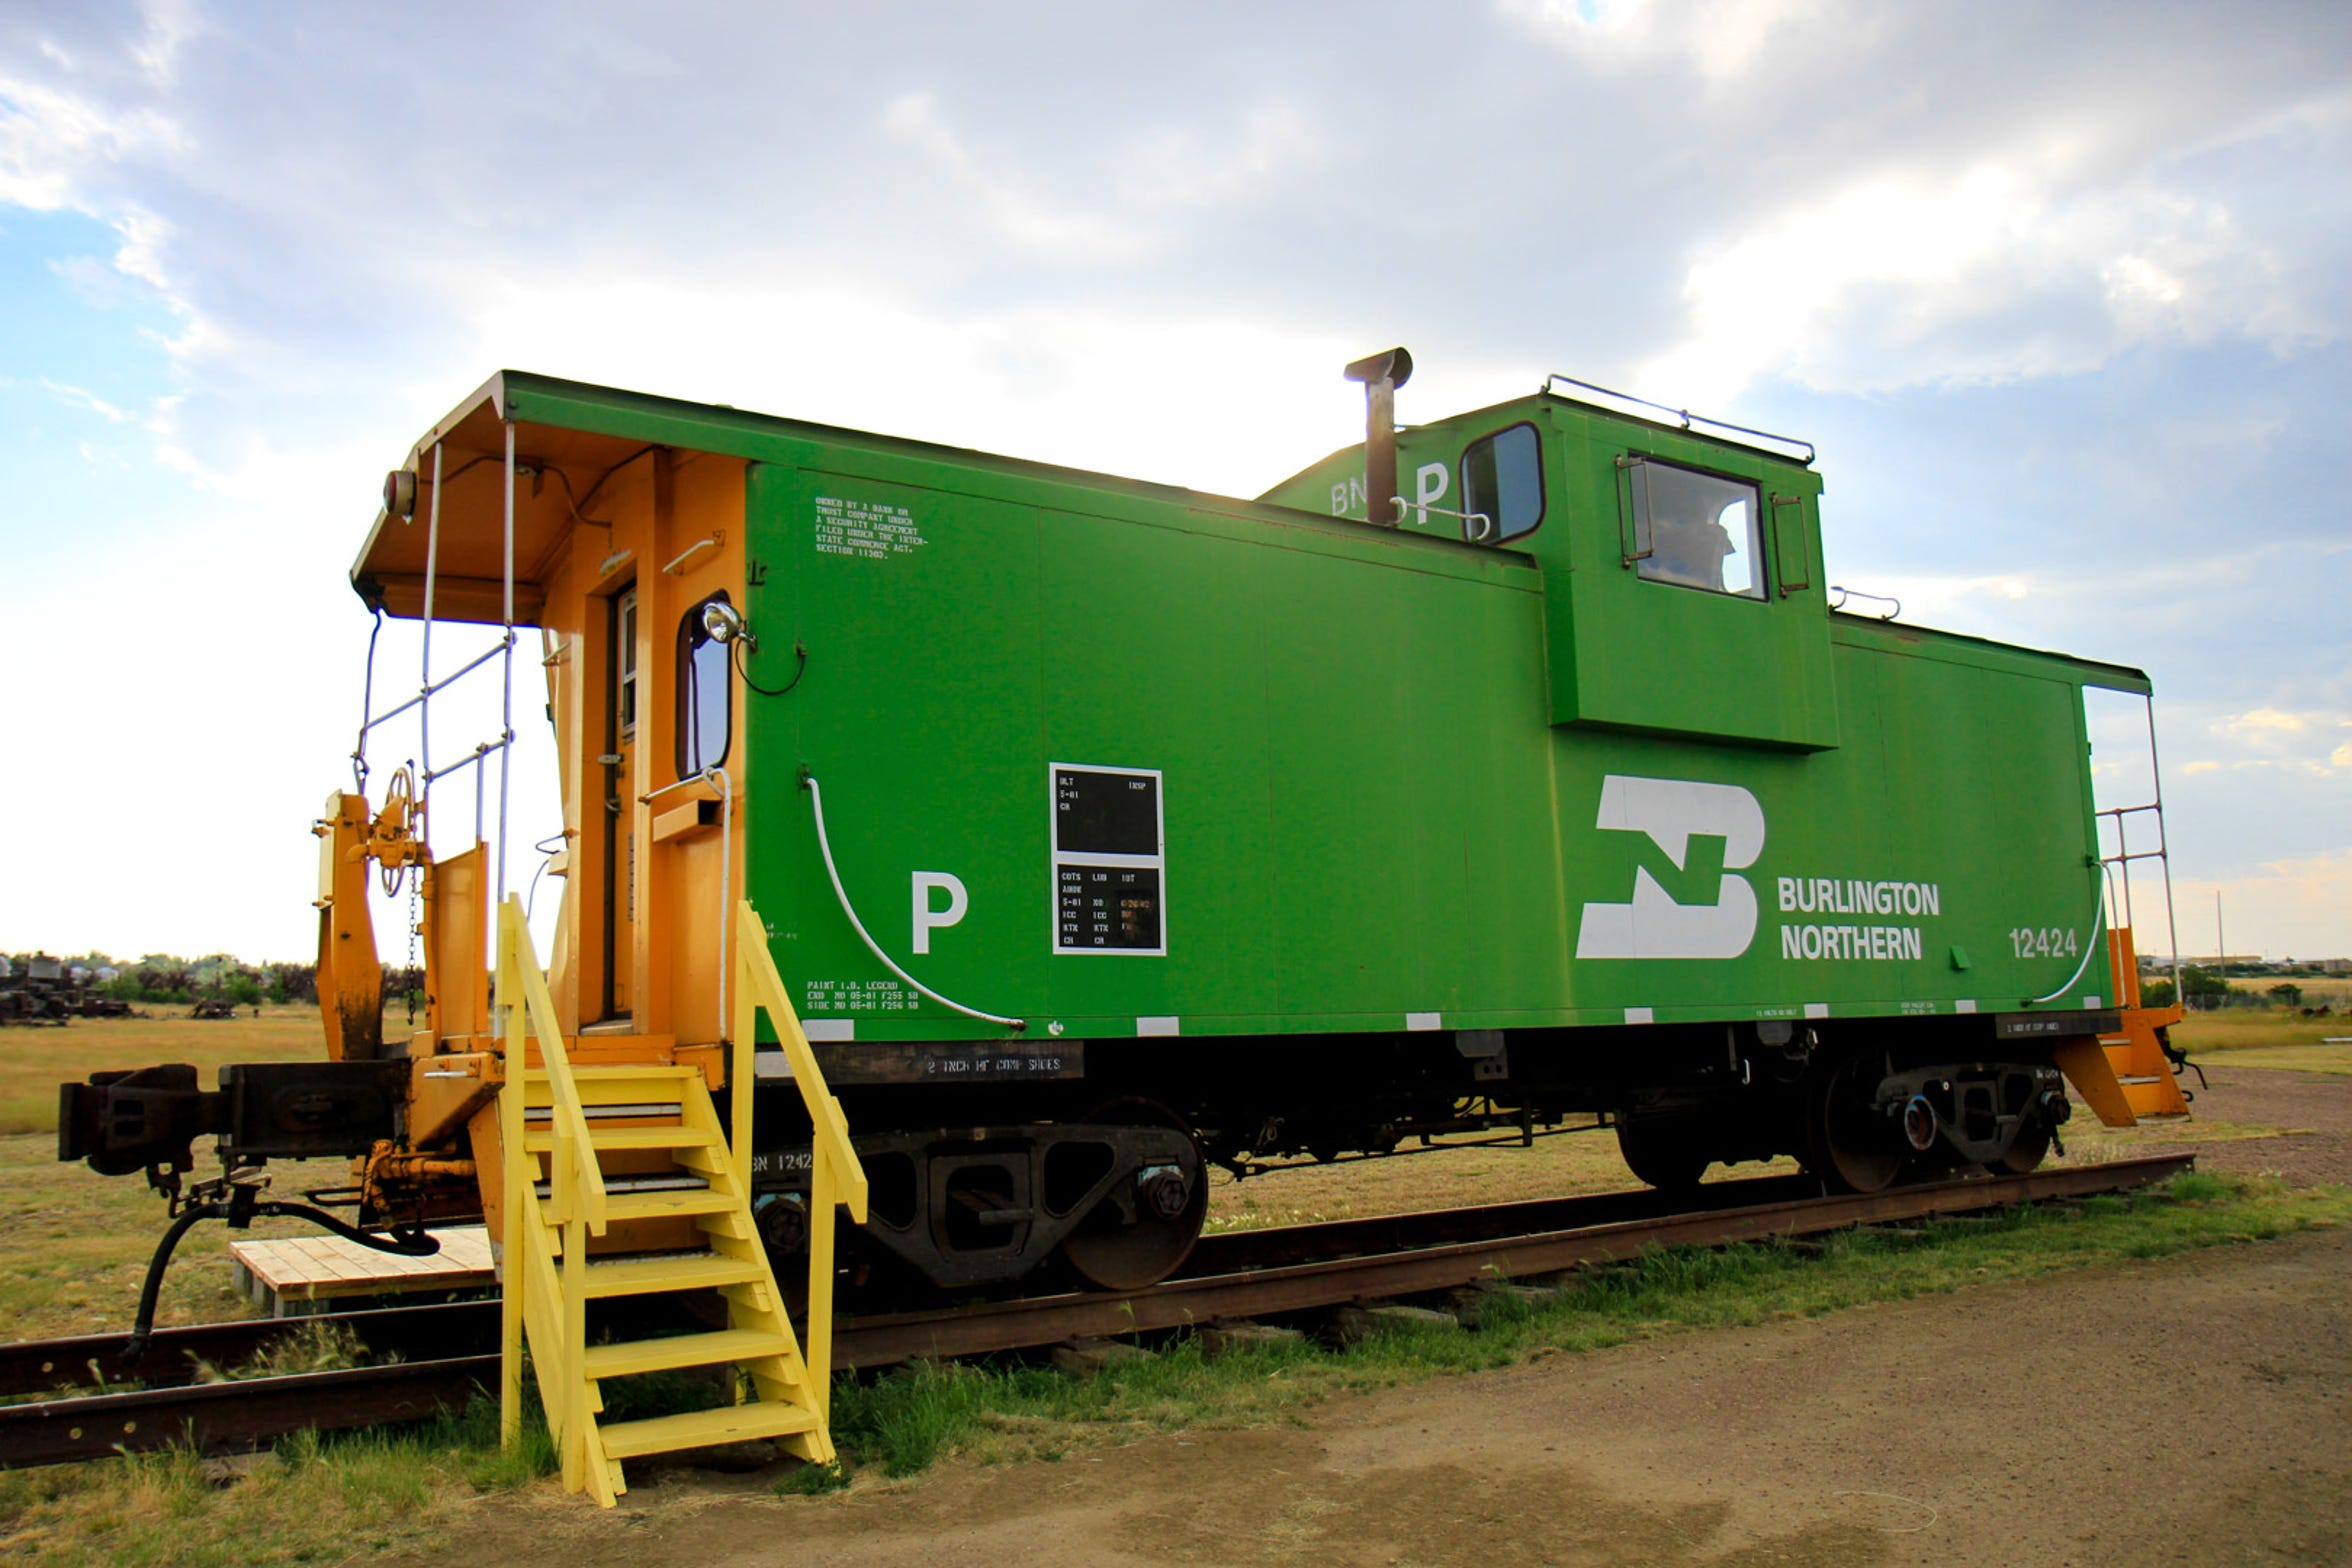 The Burlington Northern Caboose of 1981 at the Glacier County Historical Museum